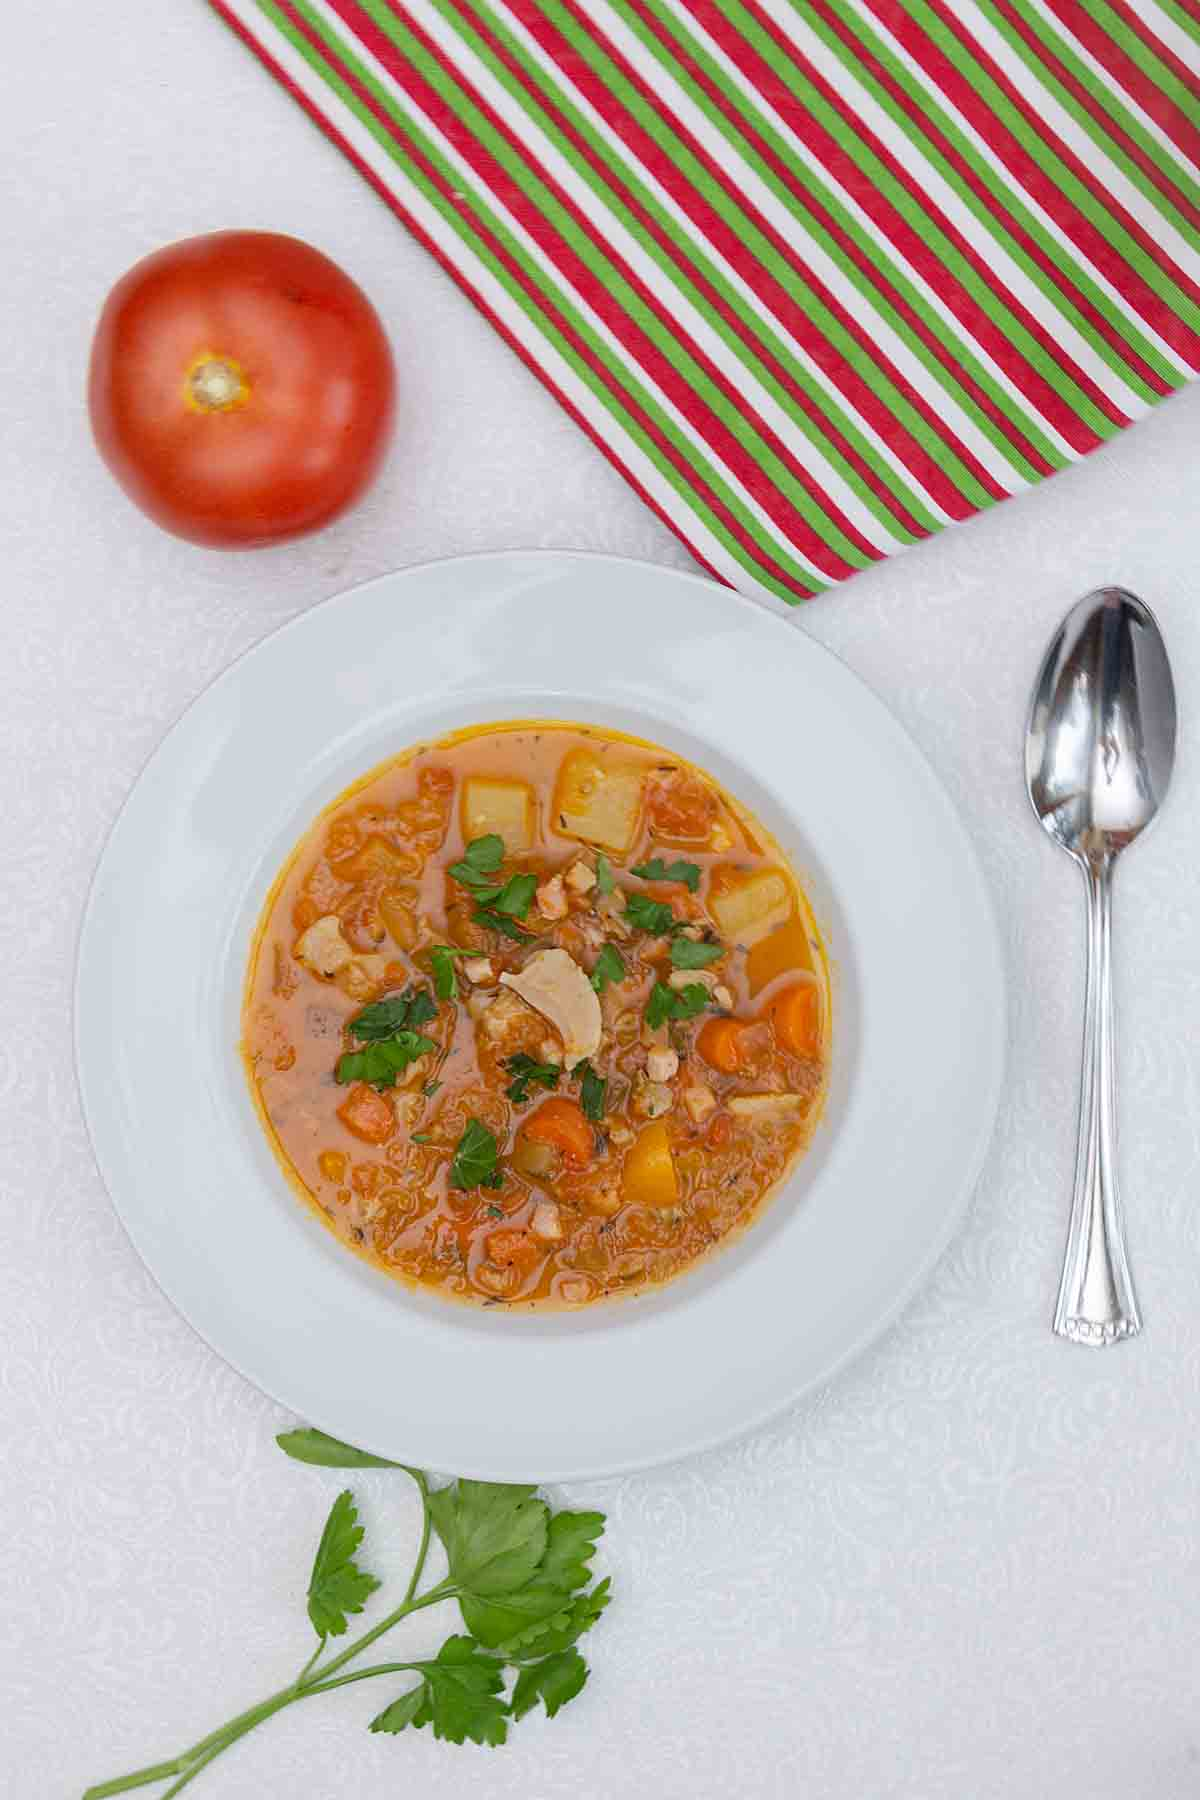 With clams, bacon, potatoes and veggies swimming in a rich tomato broth, Manhattan Clam Chowder is a perfect first course or entree soup.